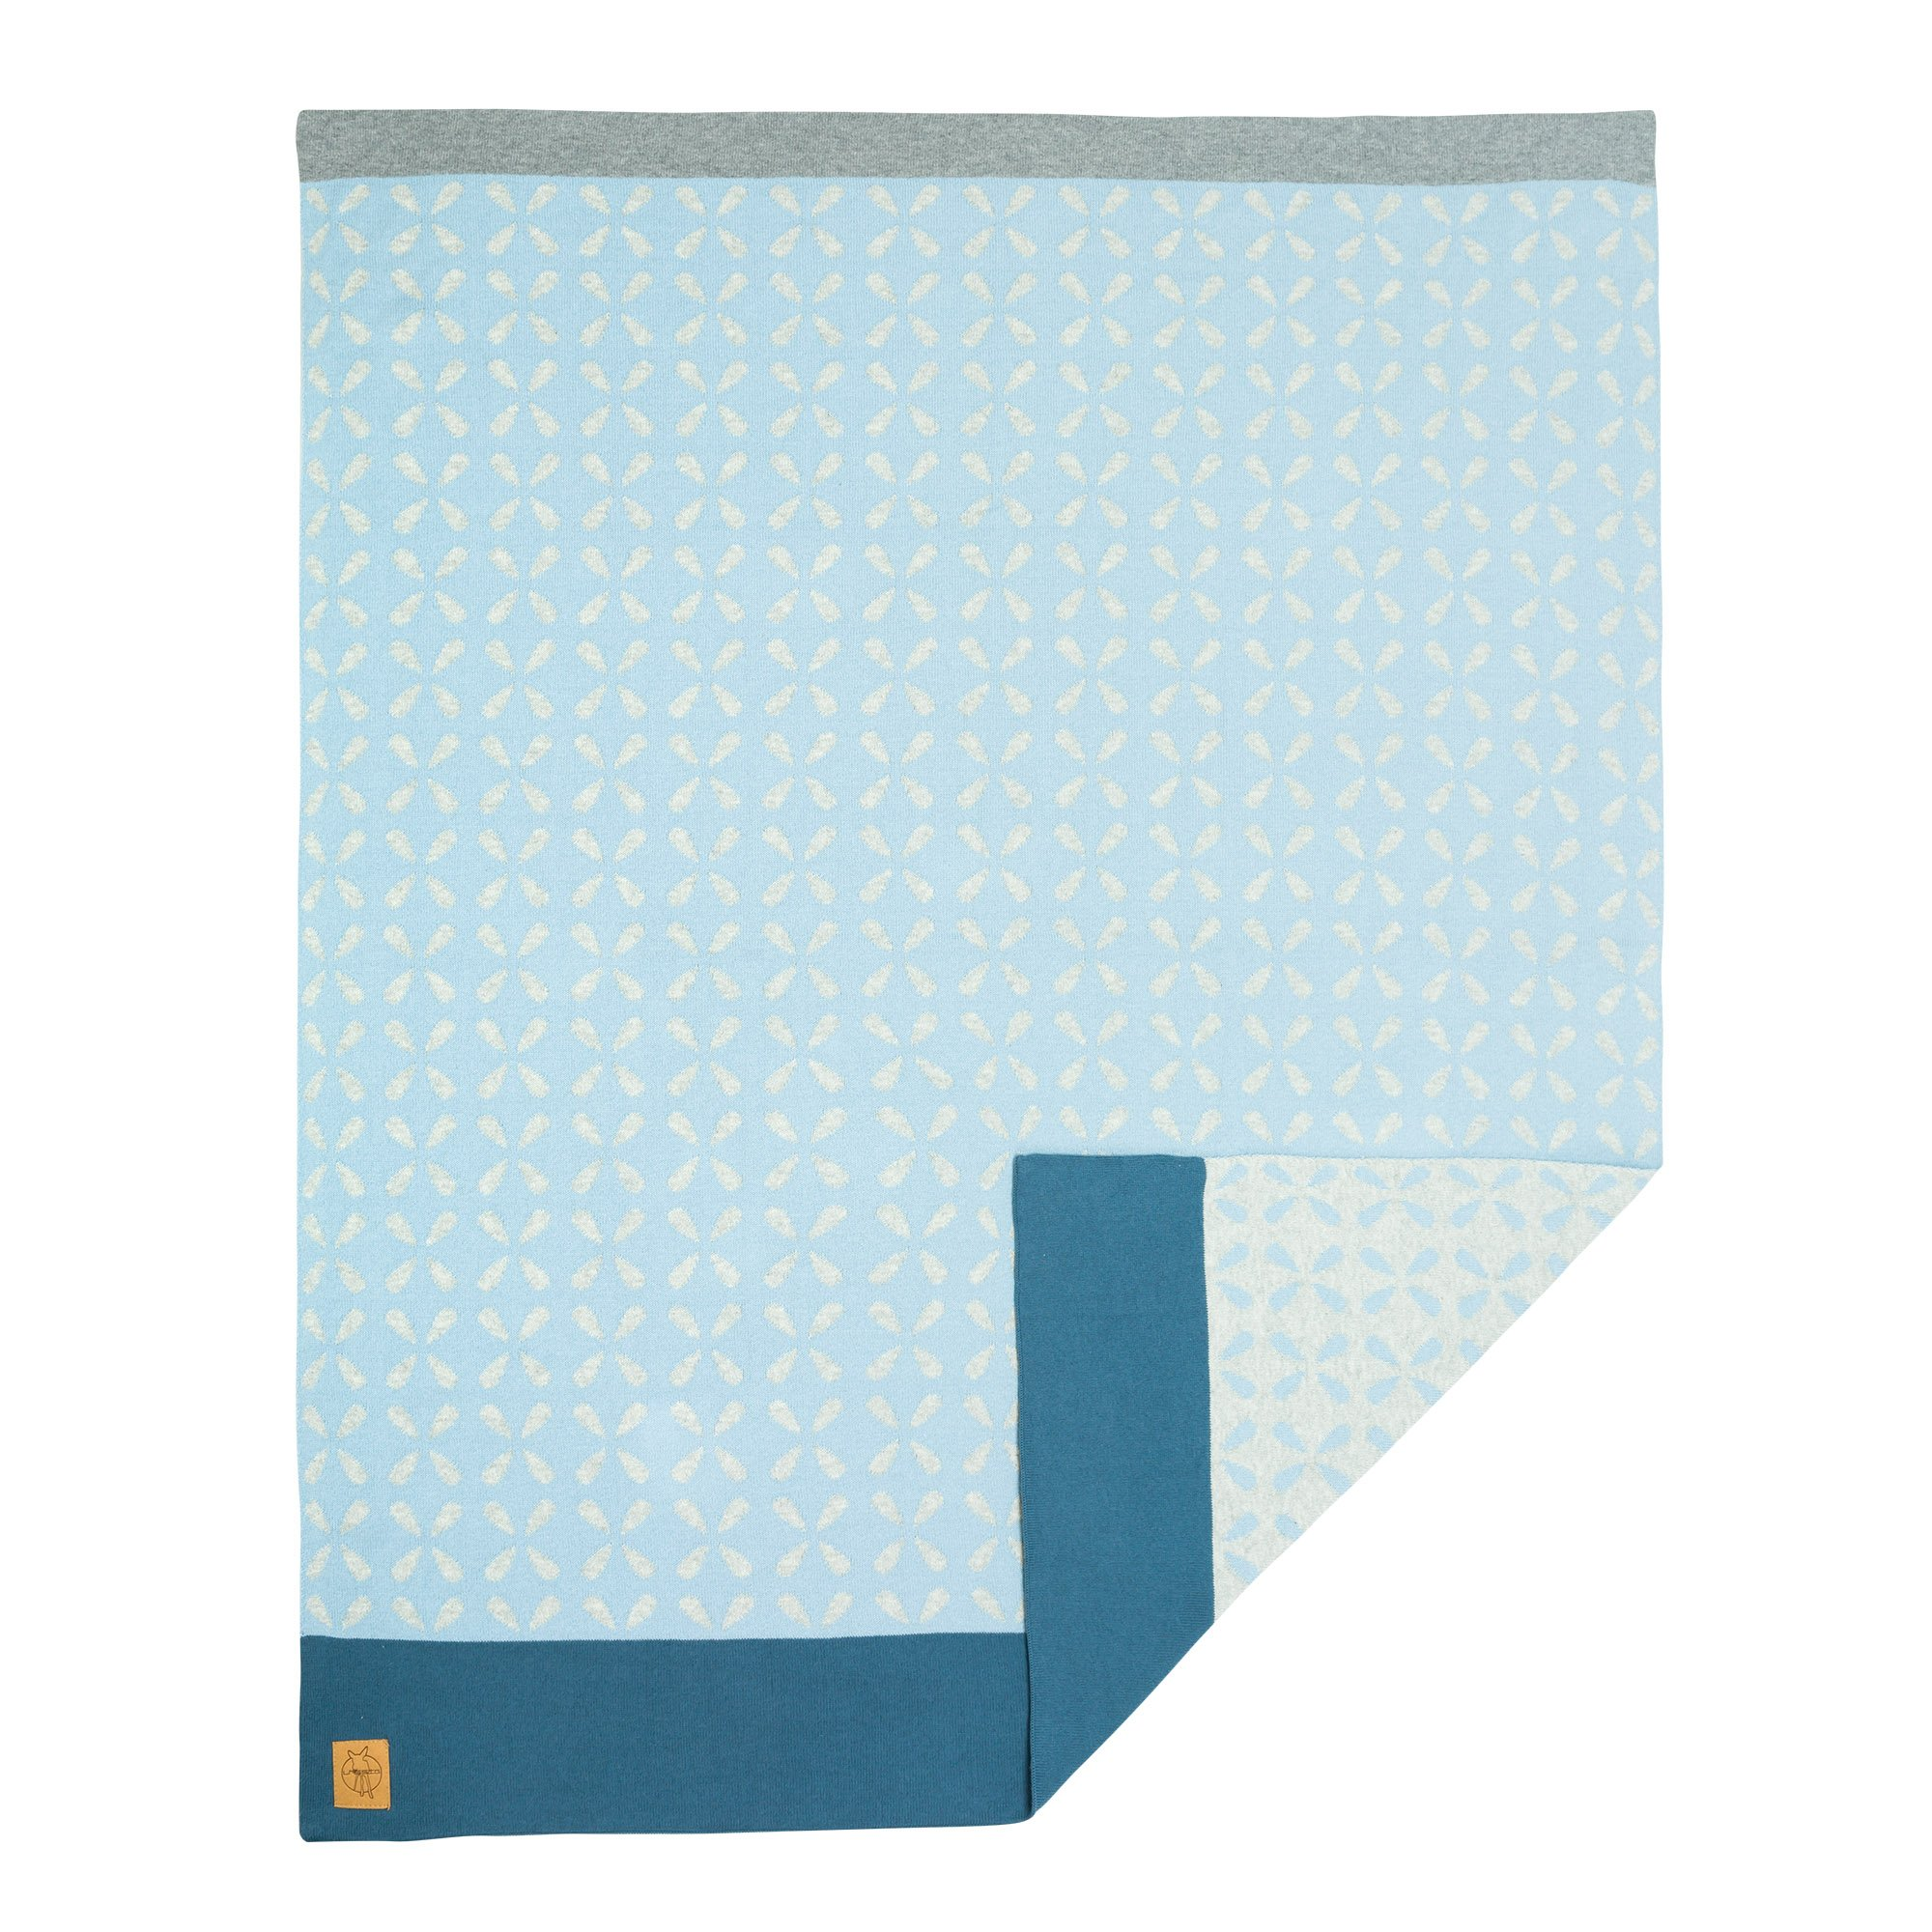 Lassig Baby Knitted Blanket Sparkles, Blue